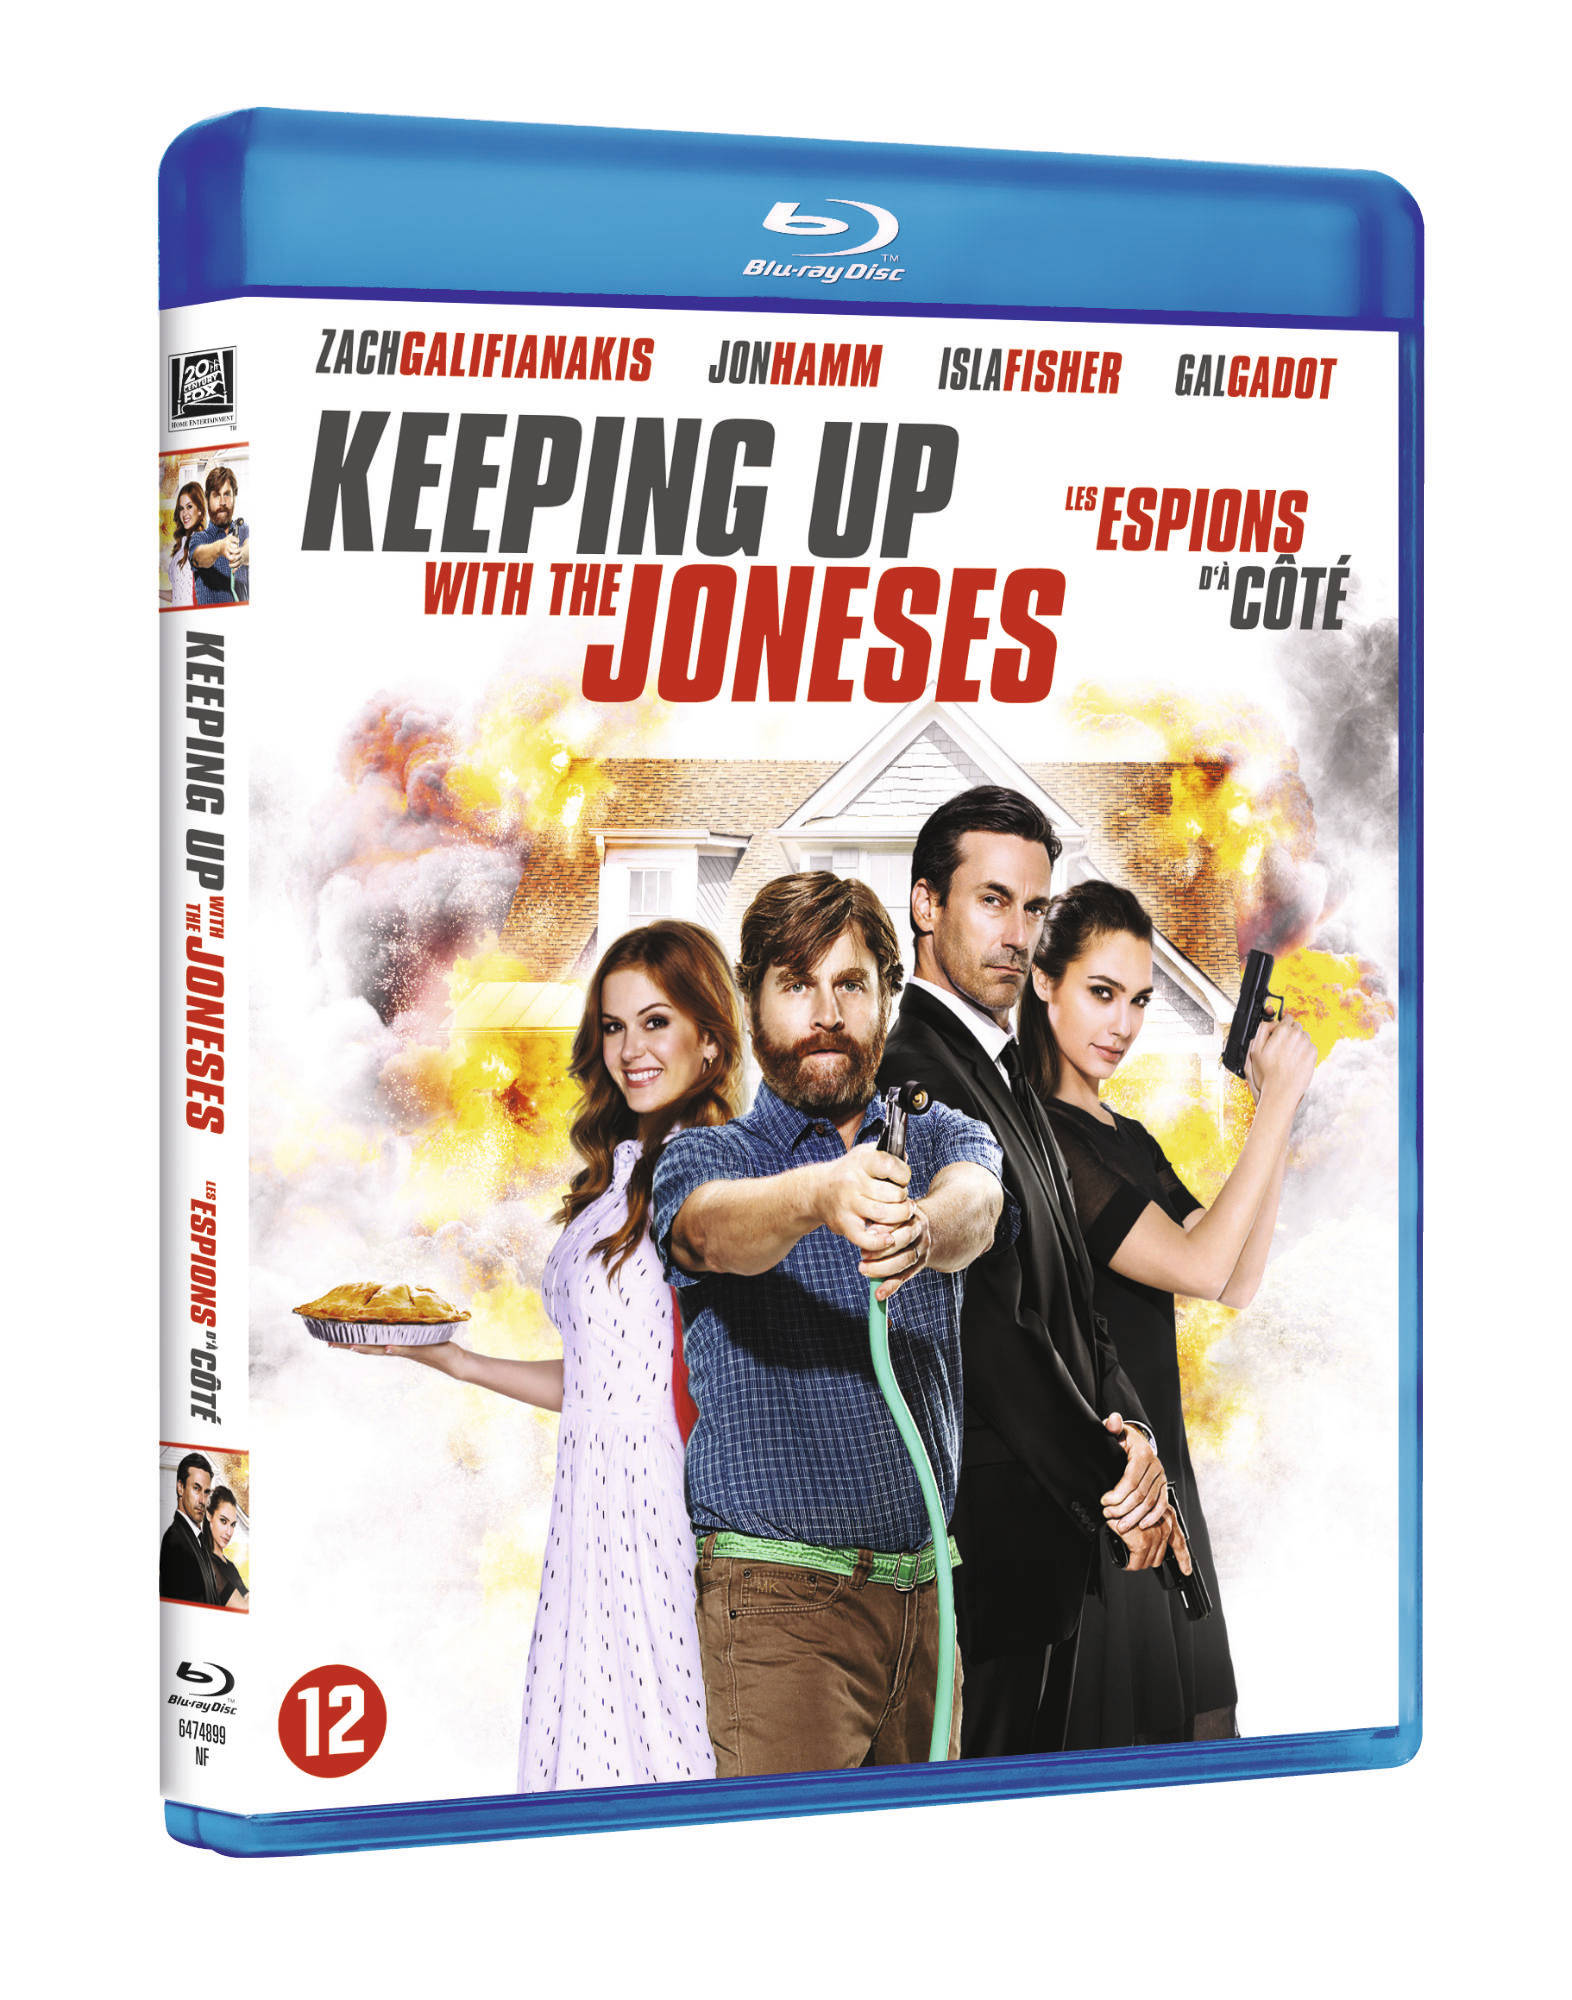 Keeping up with the Joneses Blu-Ray